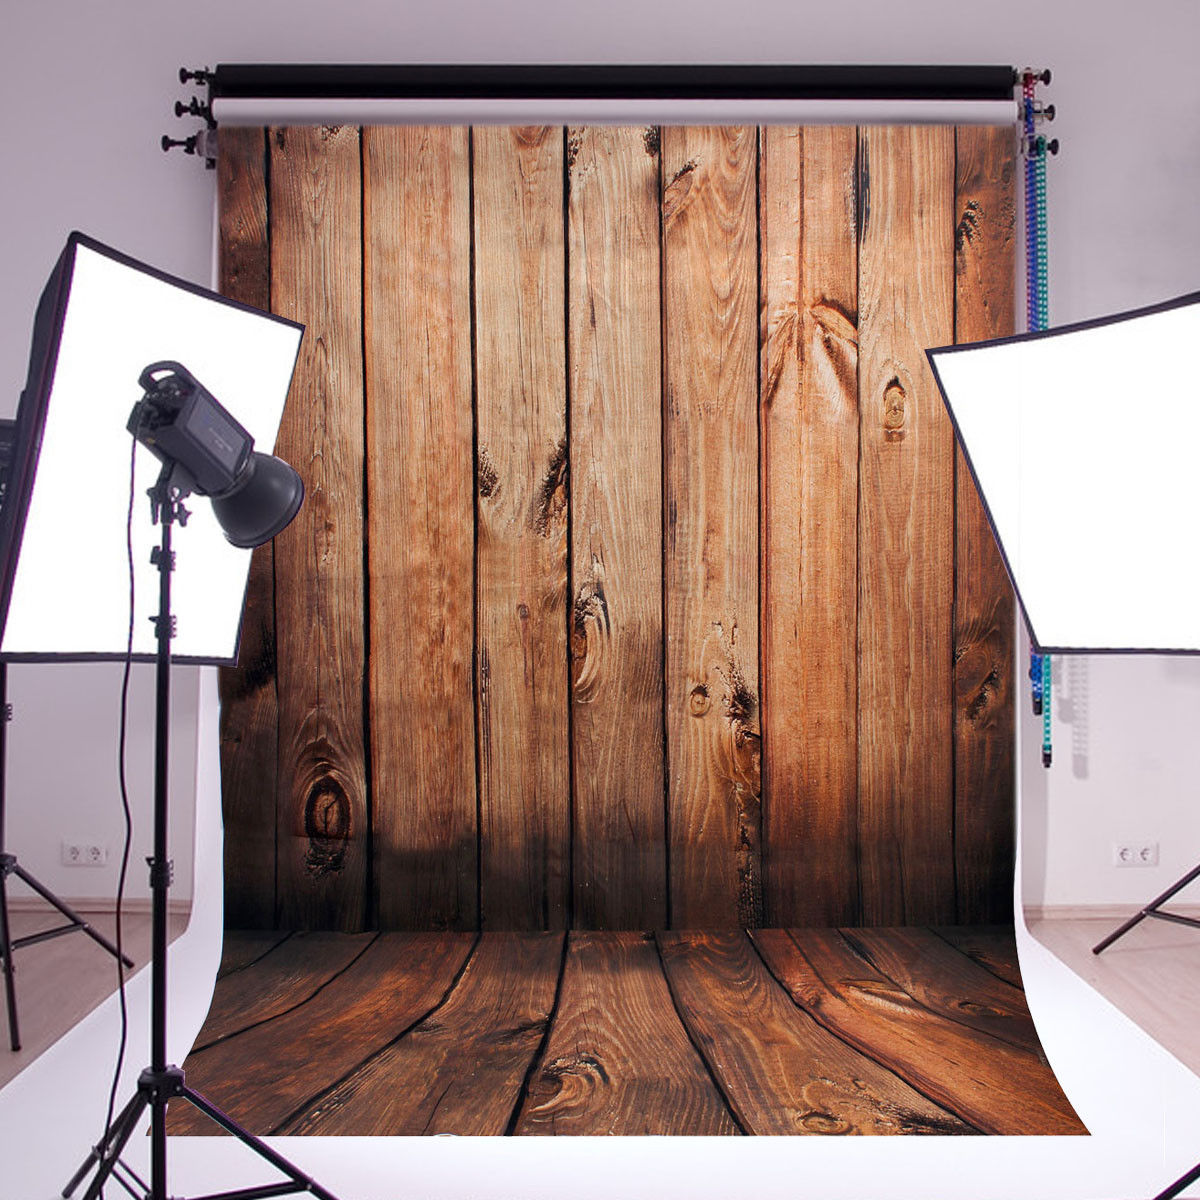 Photography Backdrops vinyl background for photo studio vintage wood baby background 2.1*1.5m Hot Sale 10x10ft vinyl custom wood grain photography backdrops prop studio background tmw 20191 page 4 page 5